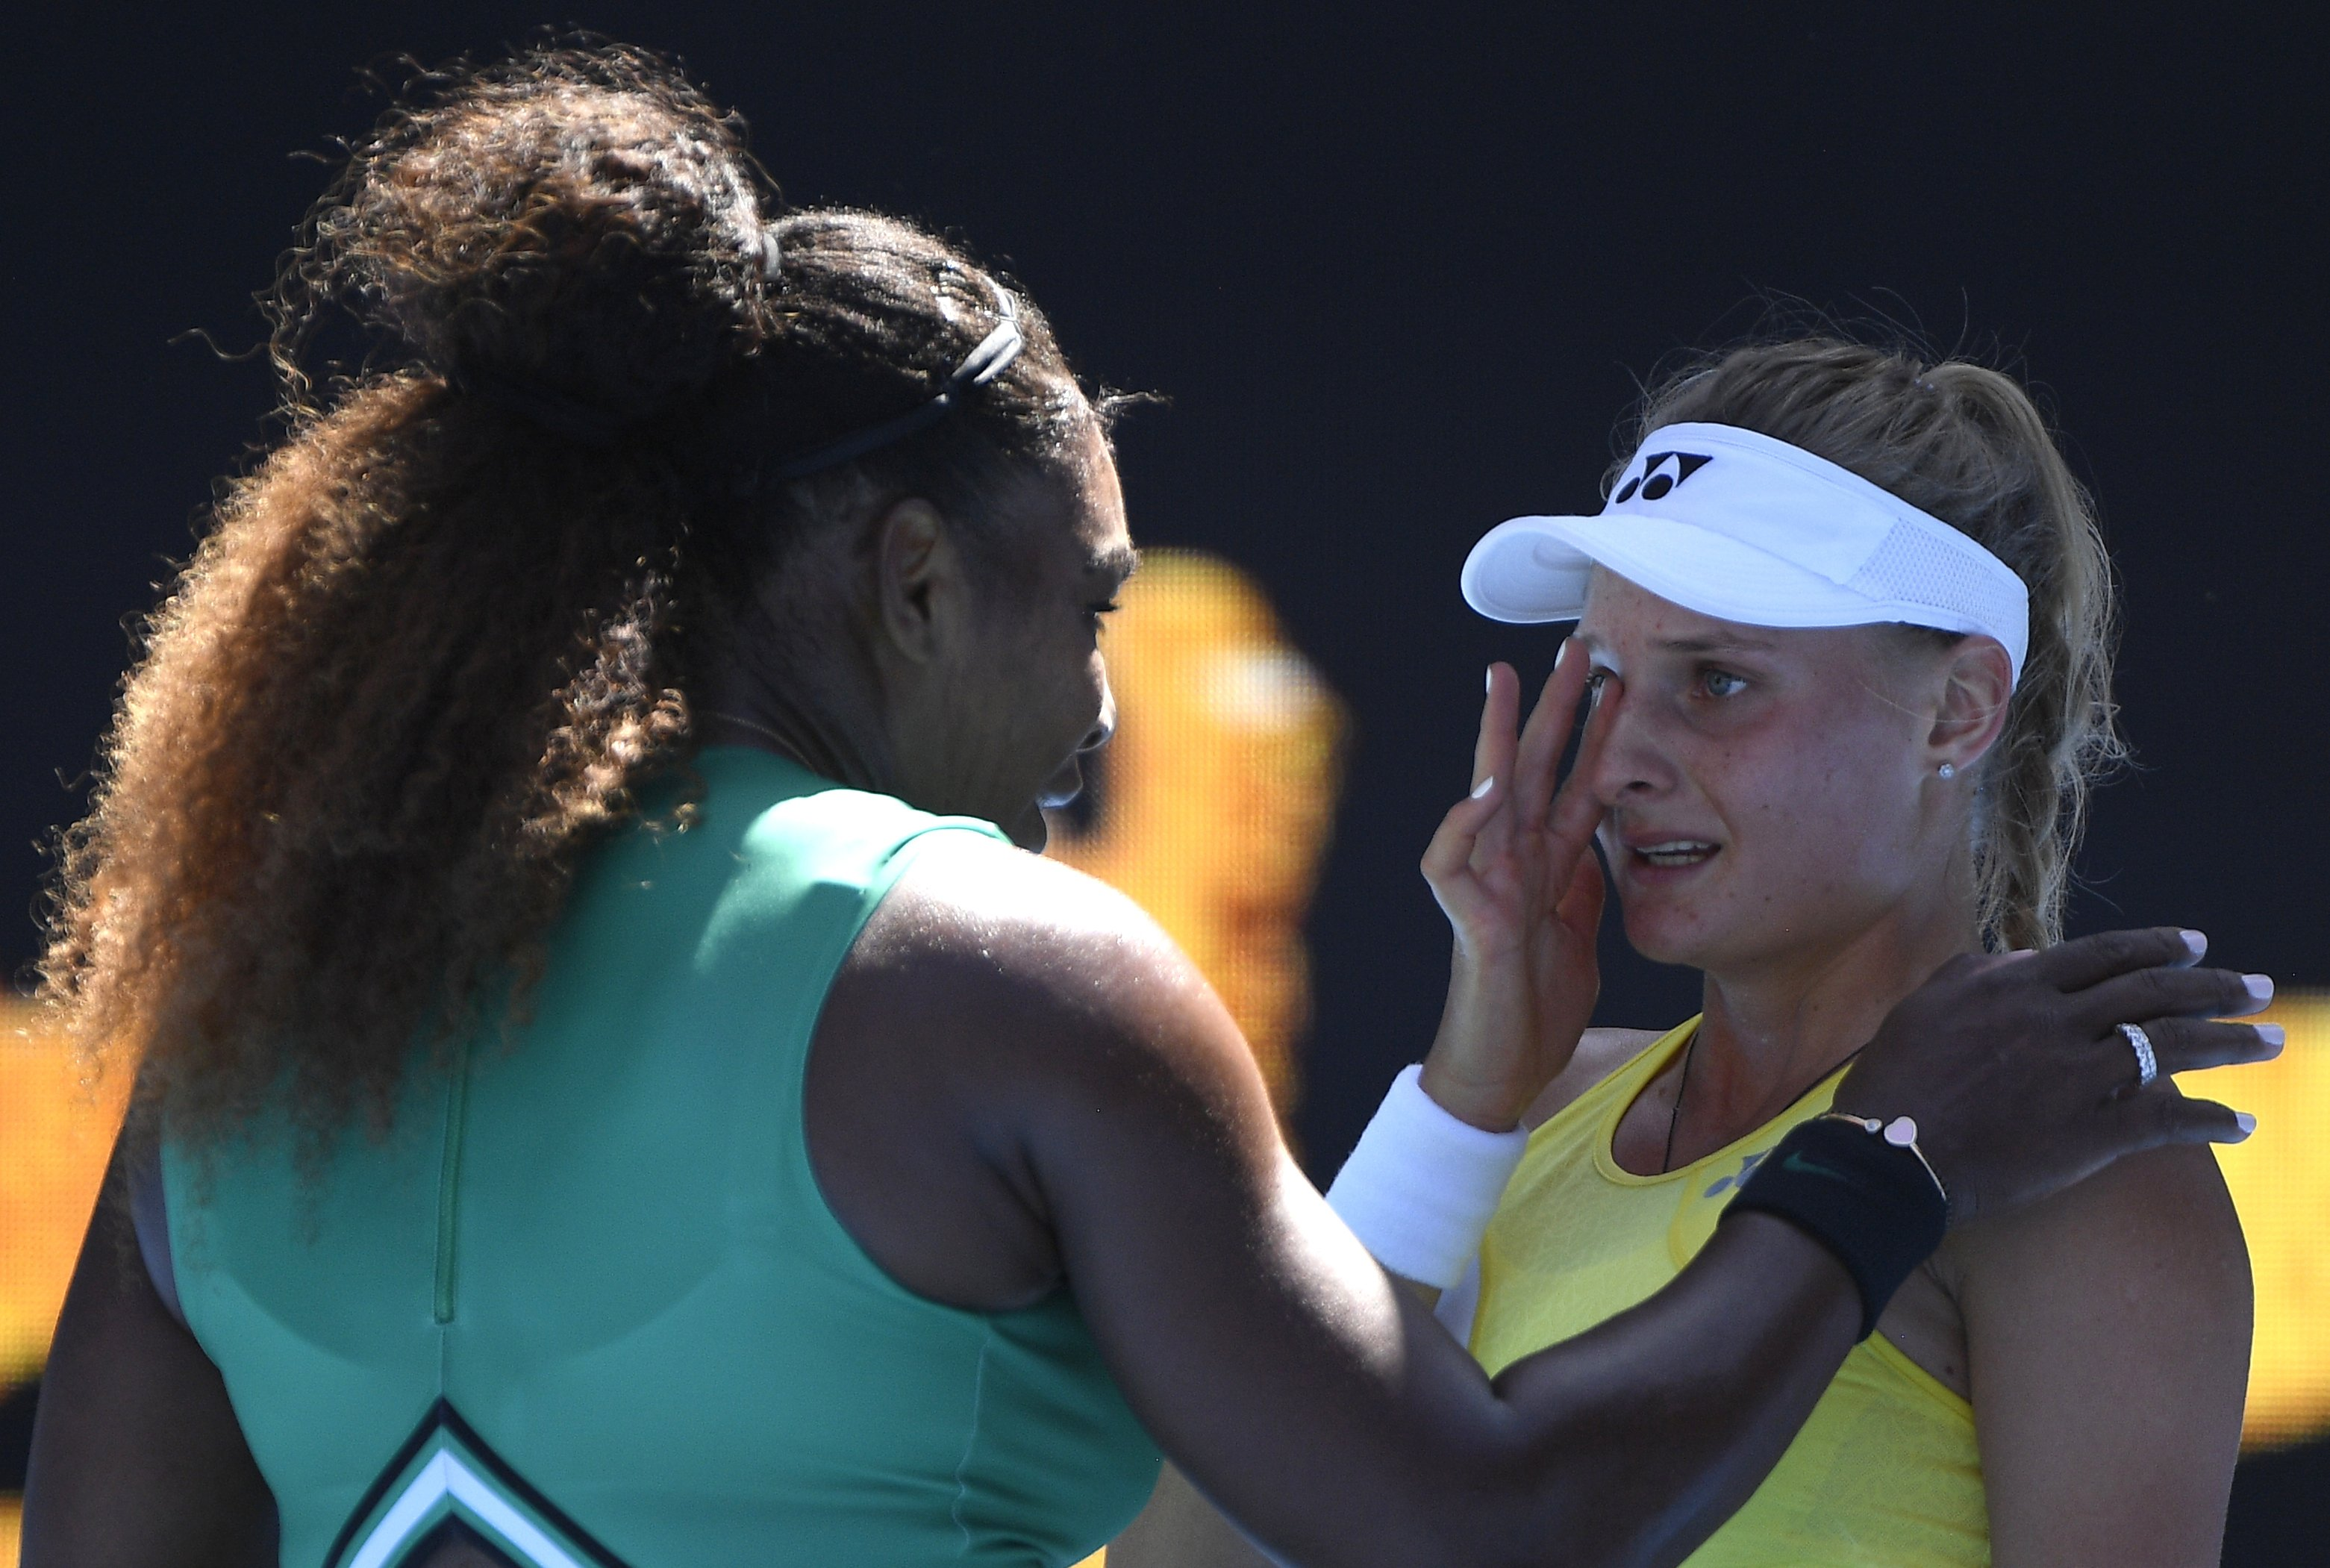 Serena Williams consoles weeping foe after sweeping into Australian Open 4th round